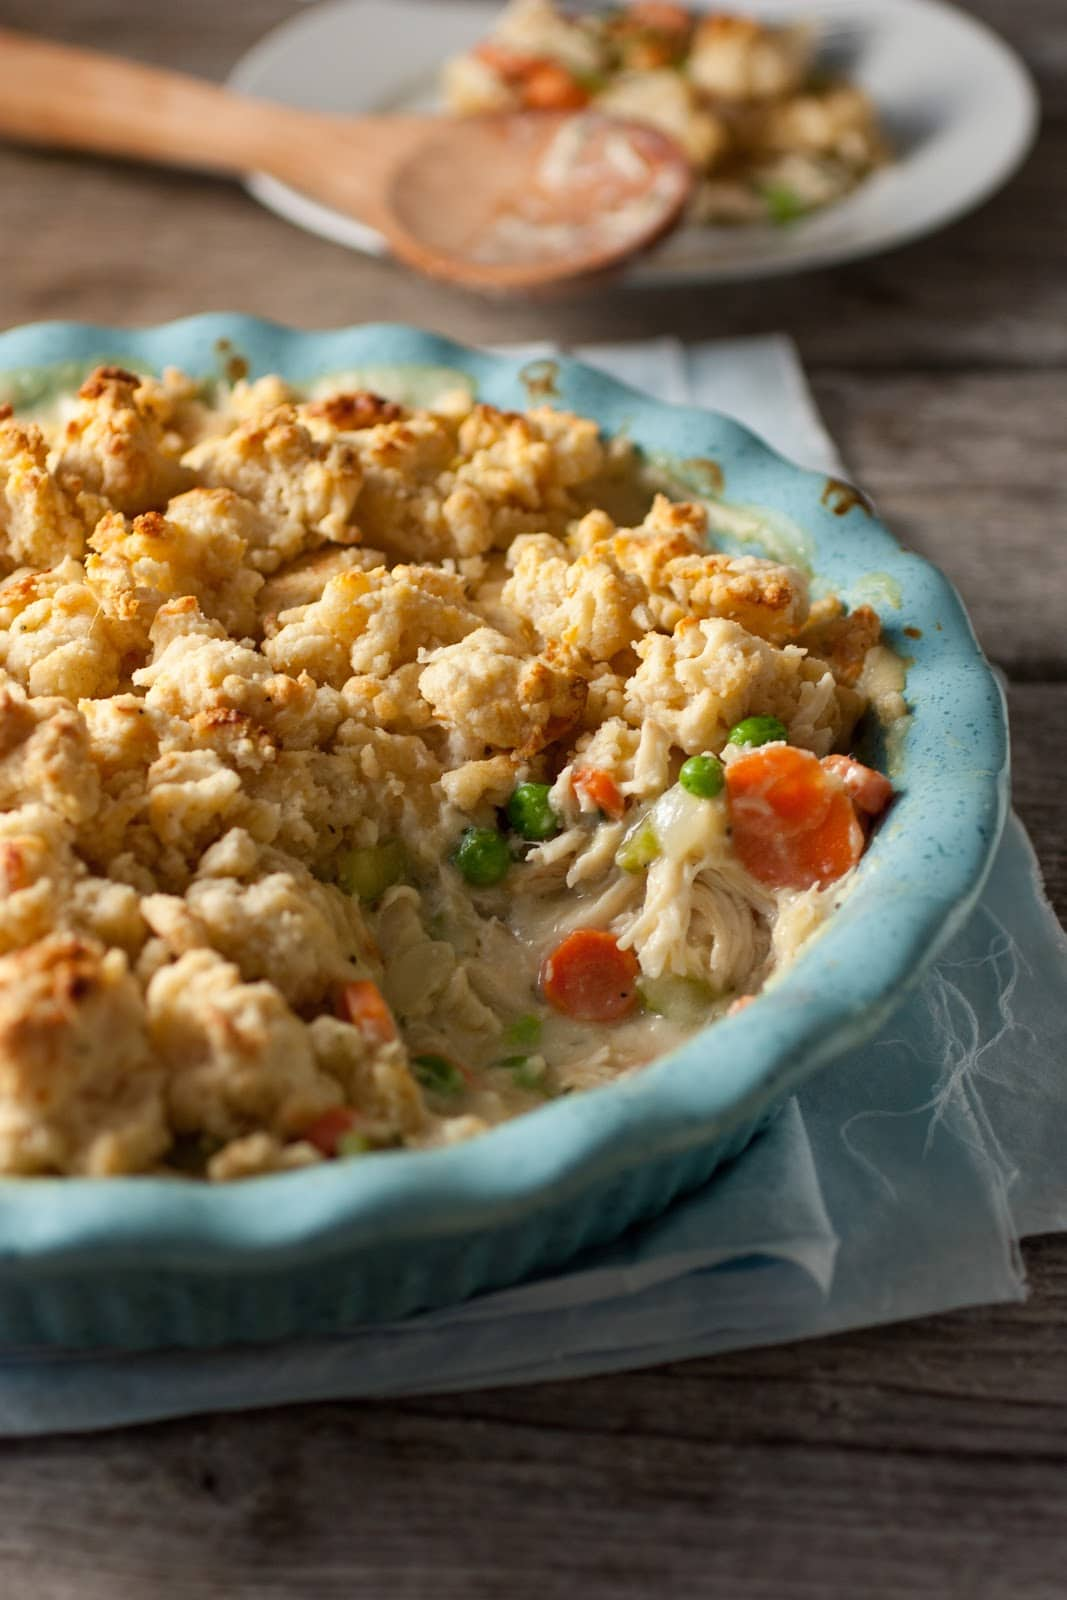 Chicken Pot Pie Crumble - My Favorite Pot Pie